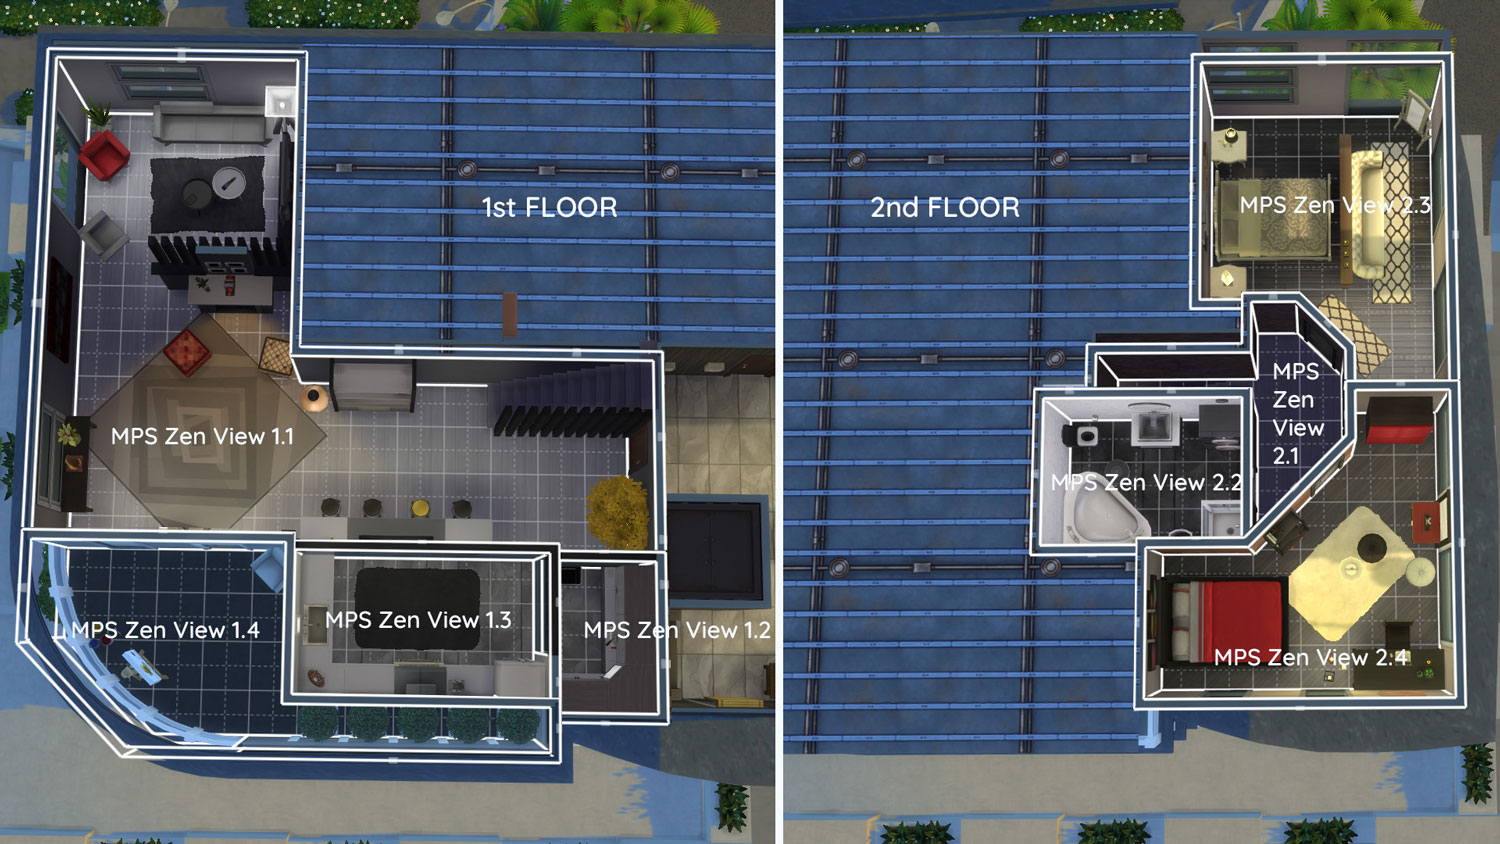 The sims 4 Apartment 702 ZenView rooms